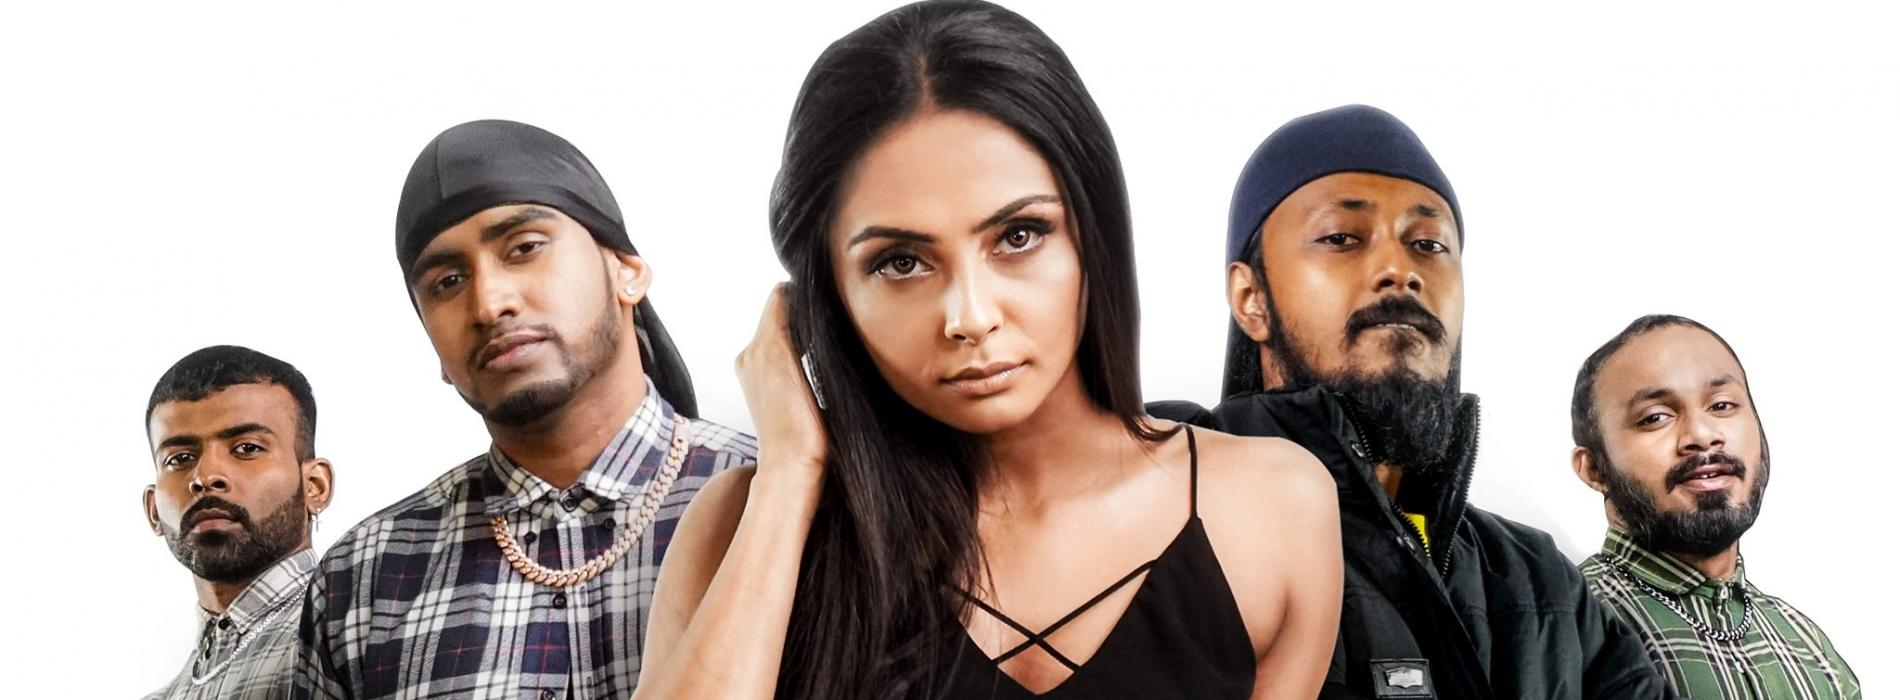 New Music : Unmadhani (උන්මාදනි) – DKM ft Master D | Official Music Video